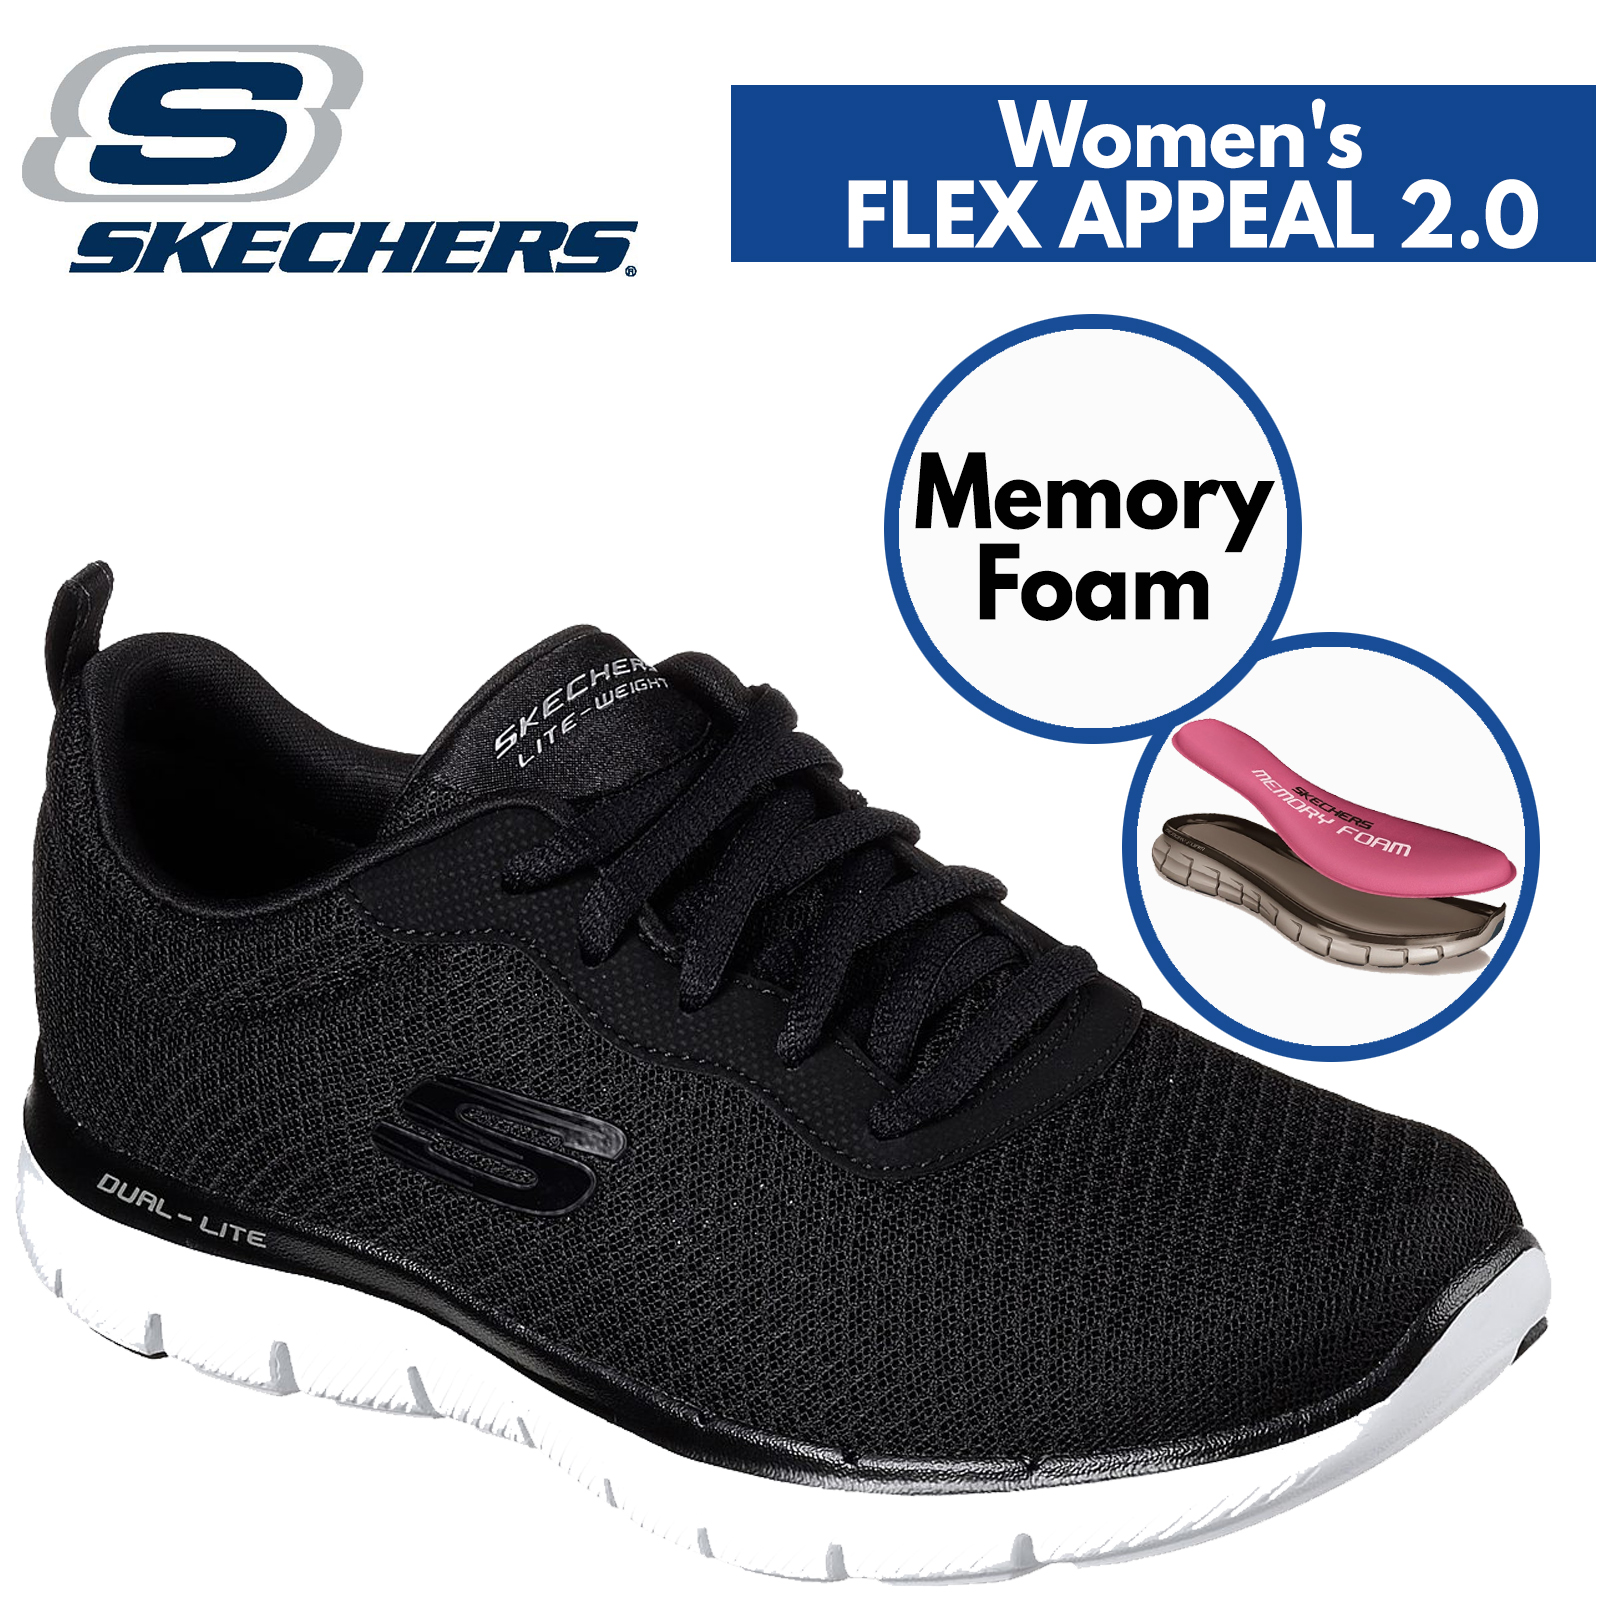 skechers air cooled memory foam for